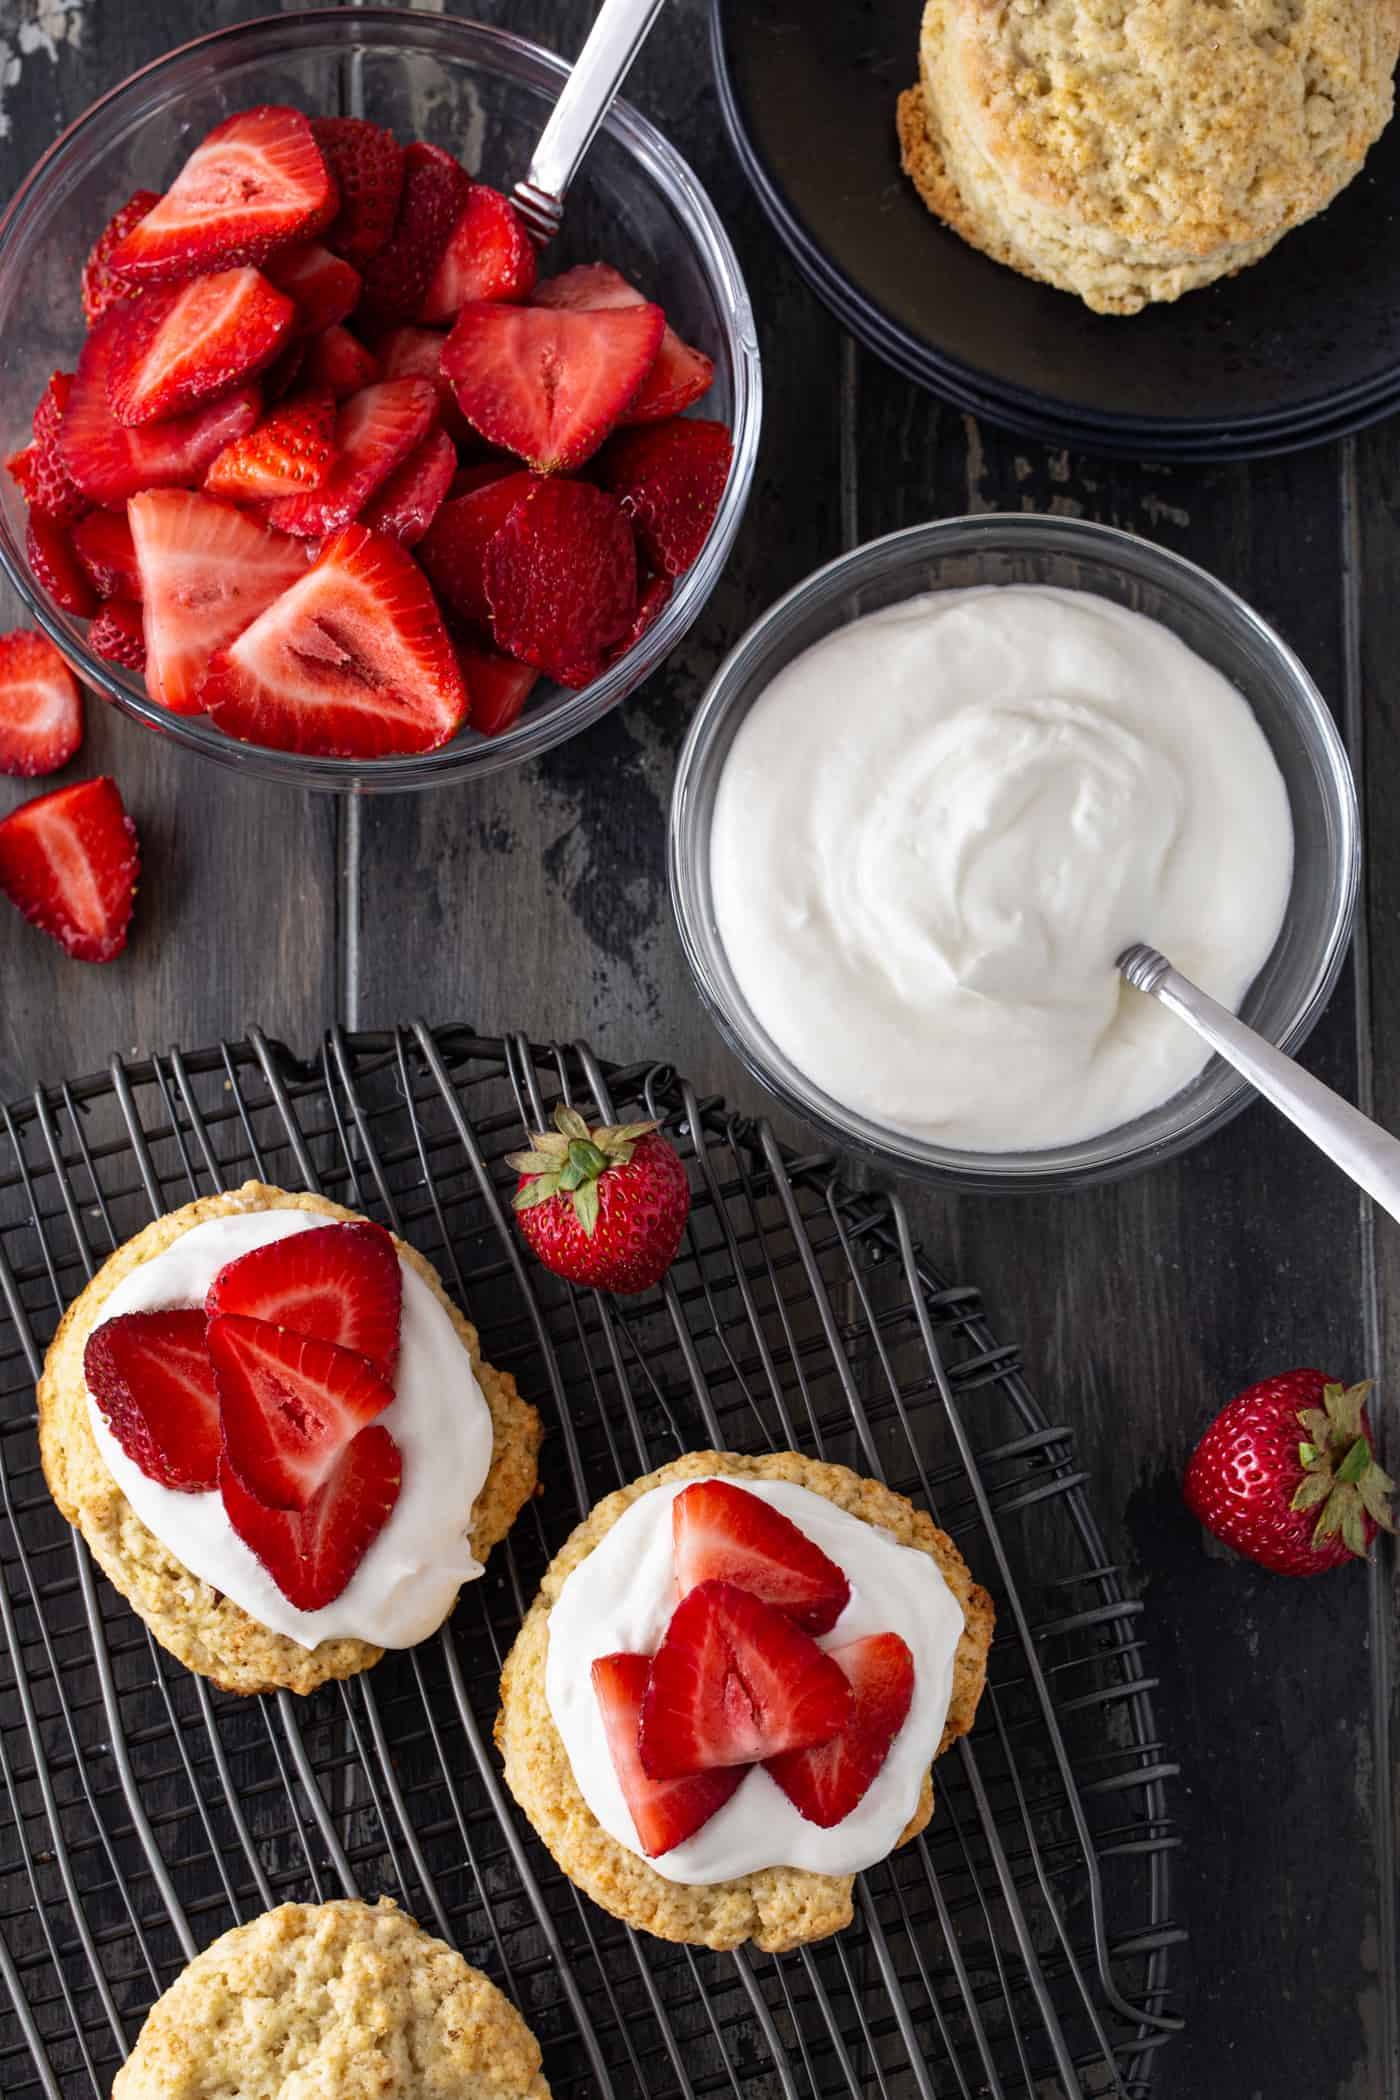 Strawberries, whipped cream and biscuits topped with fruit.